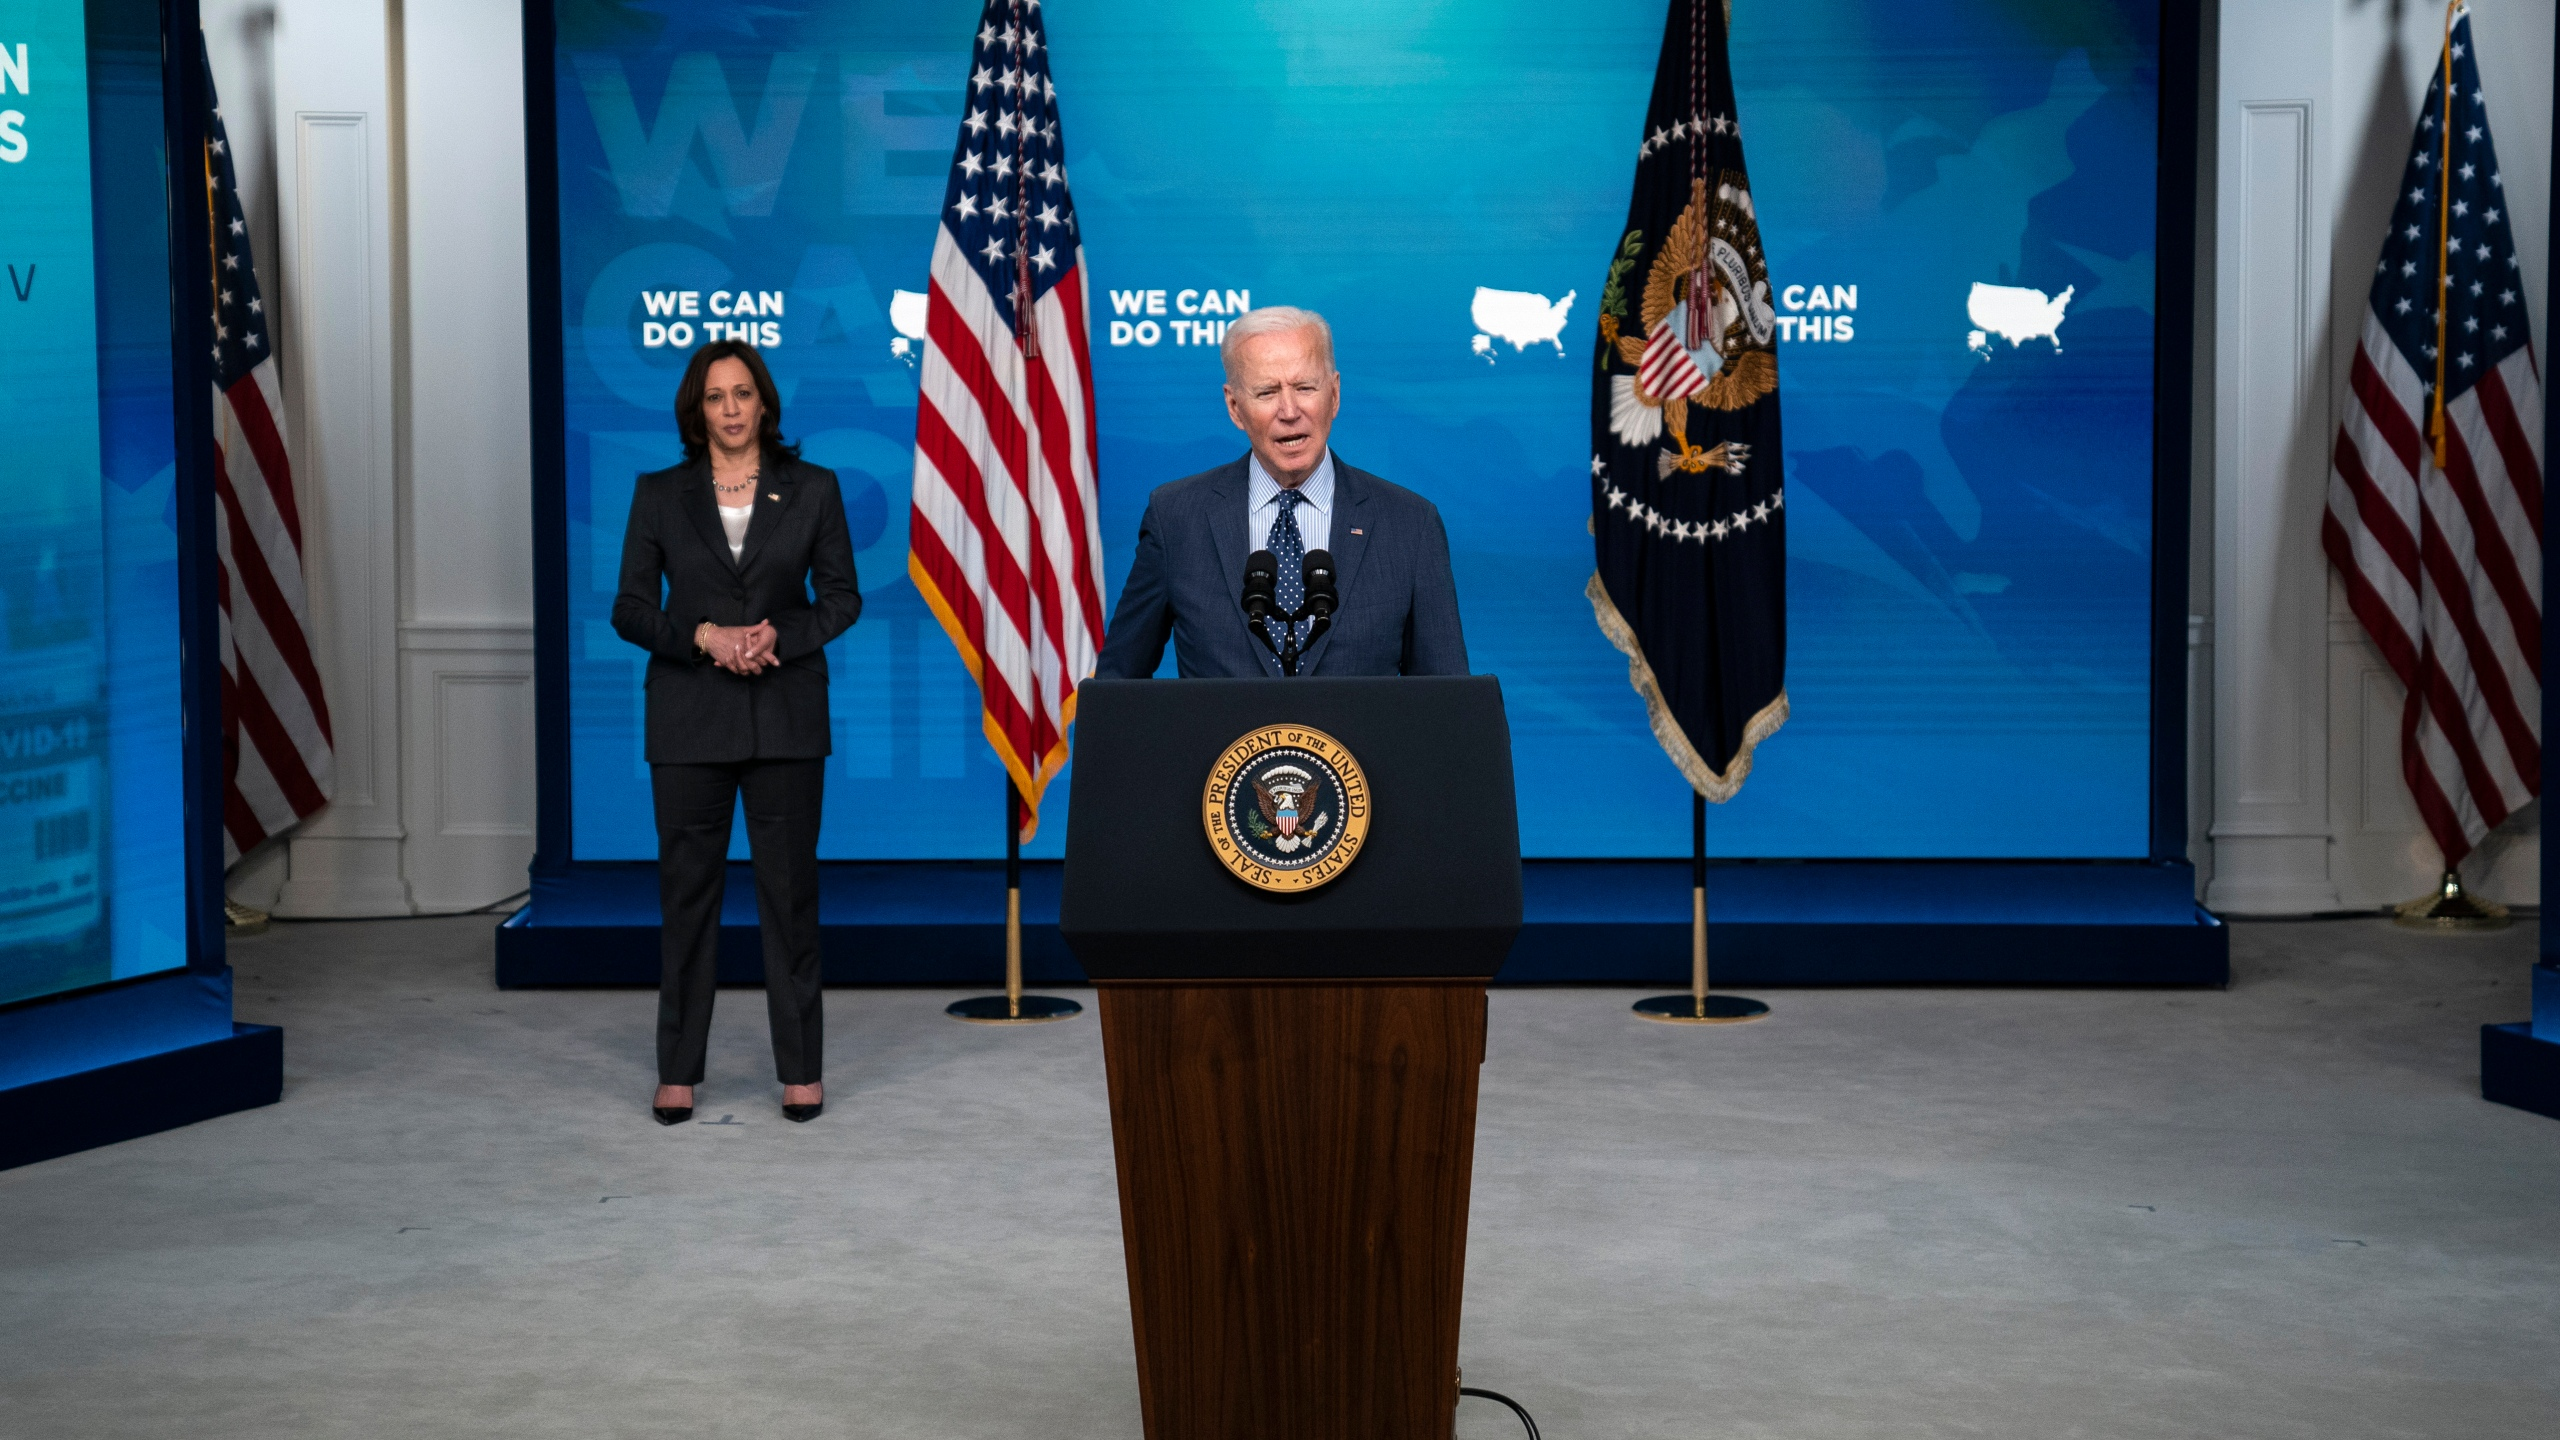 Vice President Kamala Harris listens as President Joe Biden speaks about the COVID-19 vaccination program, in the South Court Auditorium at the White House on June 2, 2021. (Evan Vucci/Associated Press)